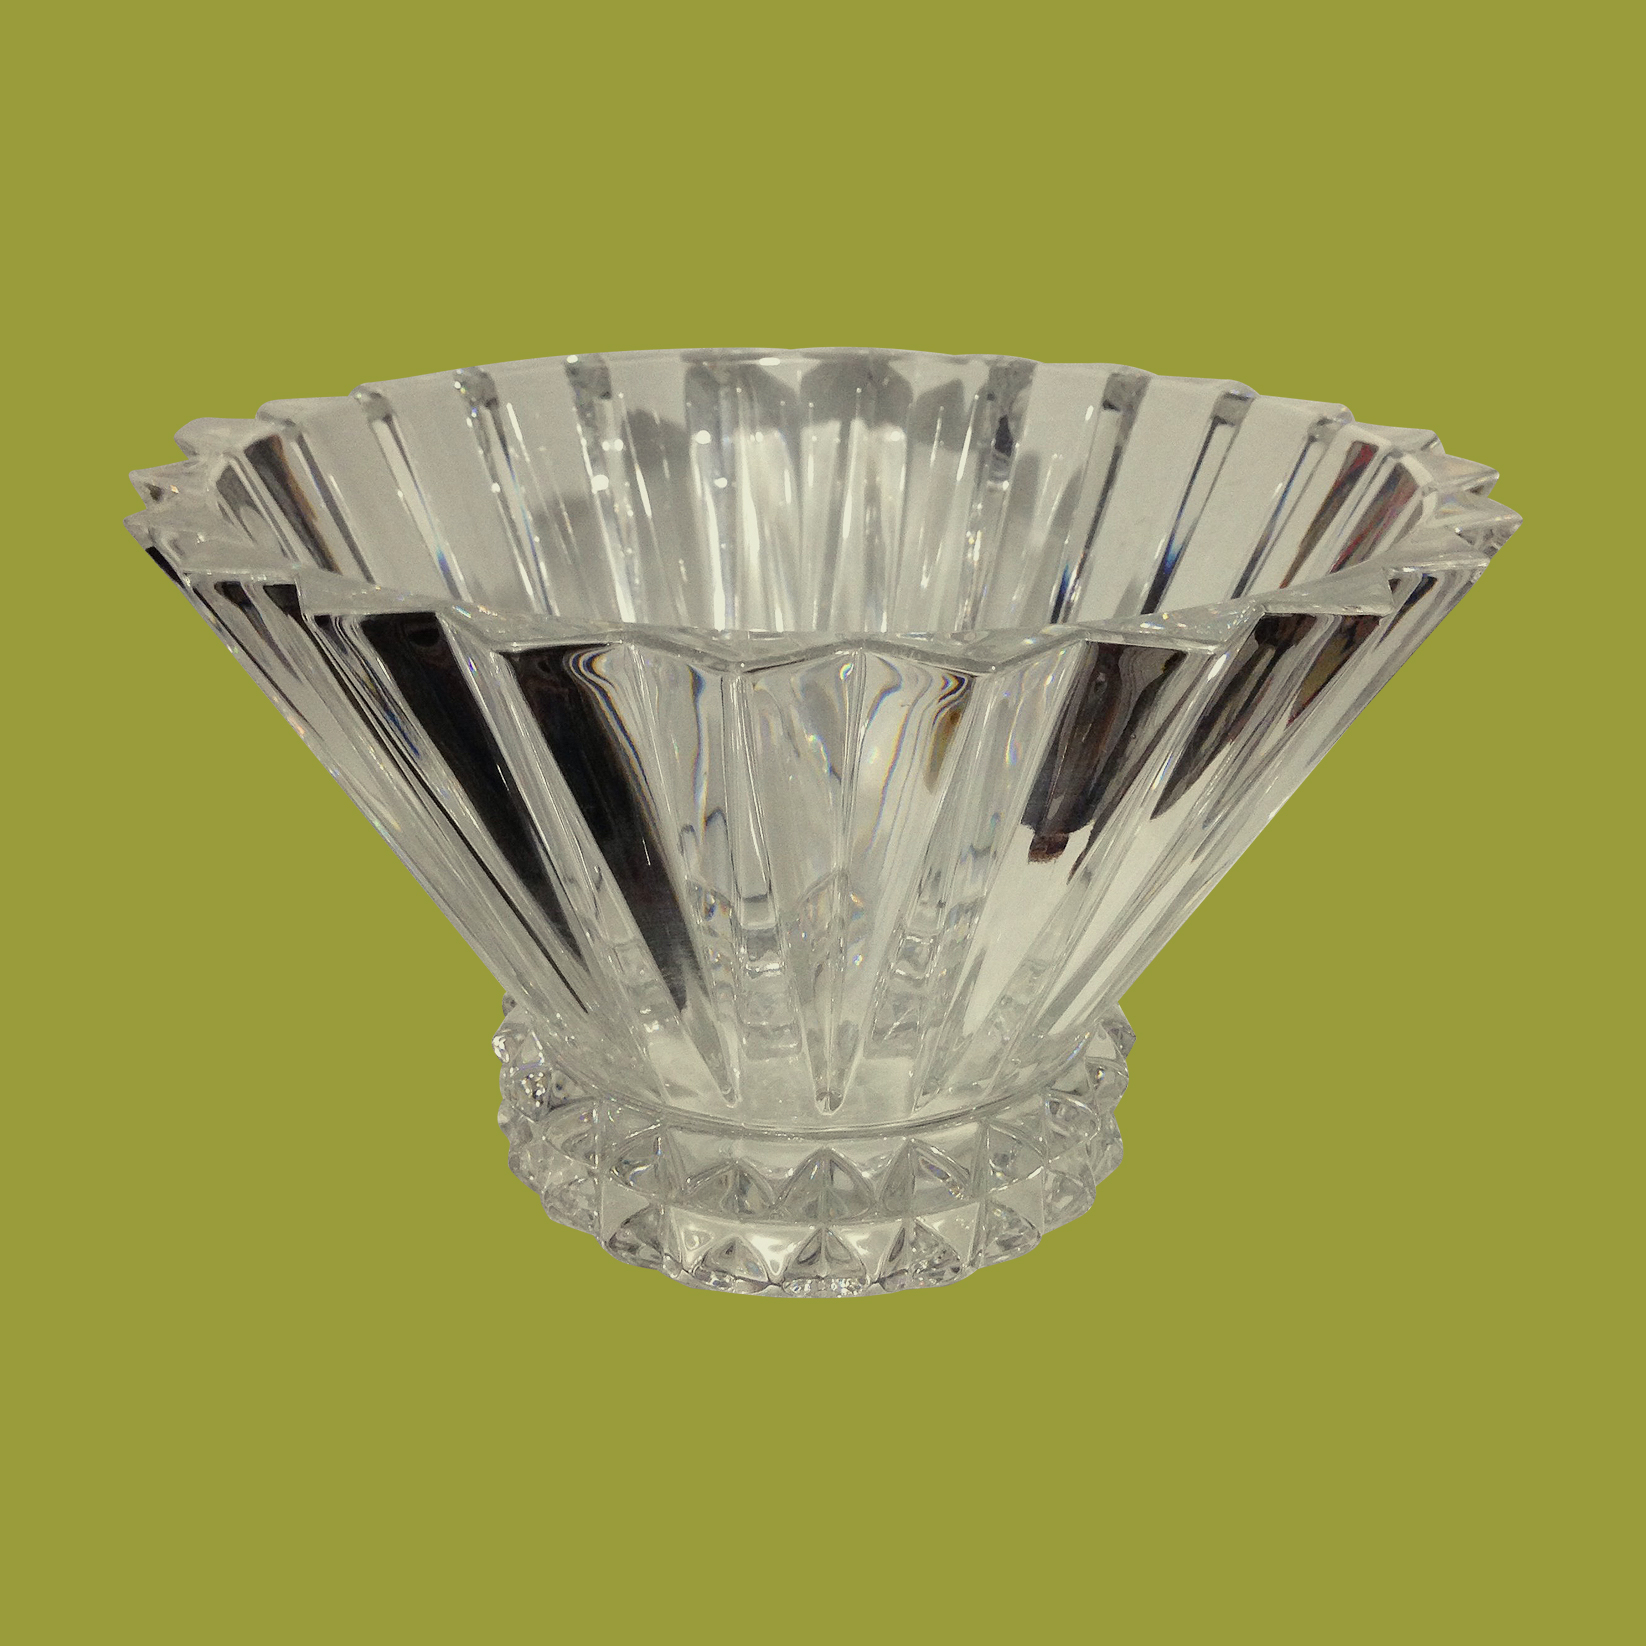 conical-studded-bowl